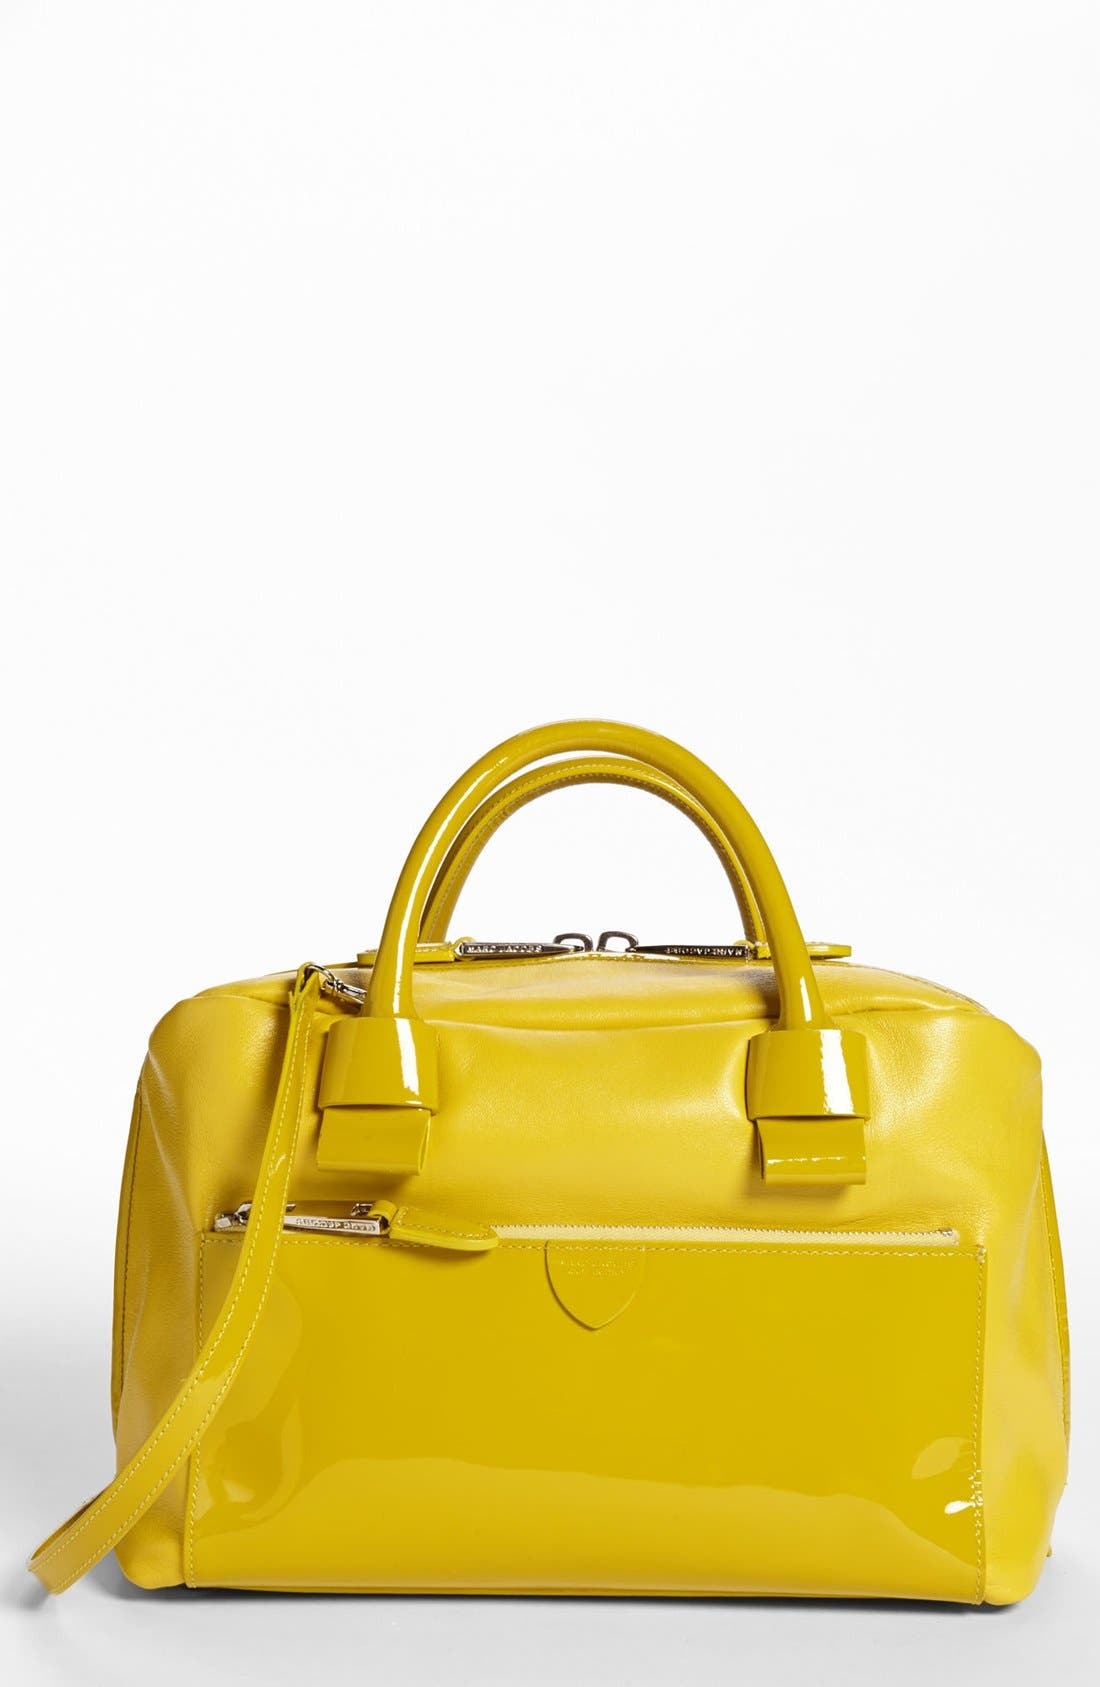 Alternate Image 1 Selected - MARC JACOBS 'Prince - Small Antonia' Leather Satchel